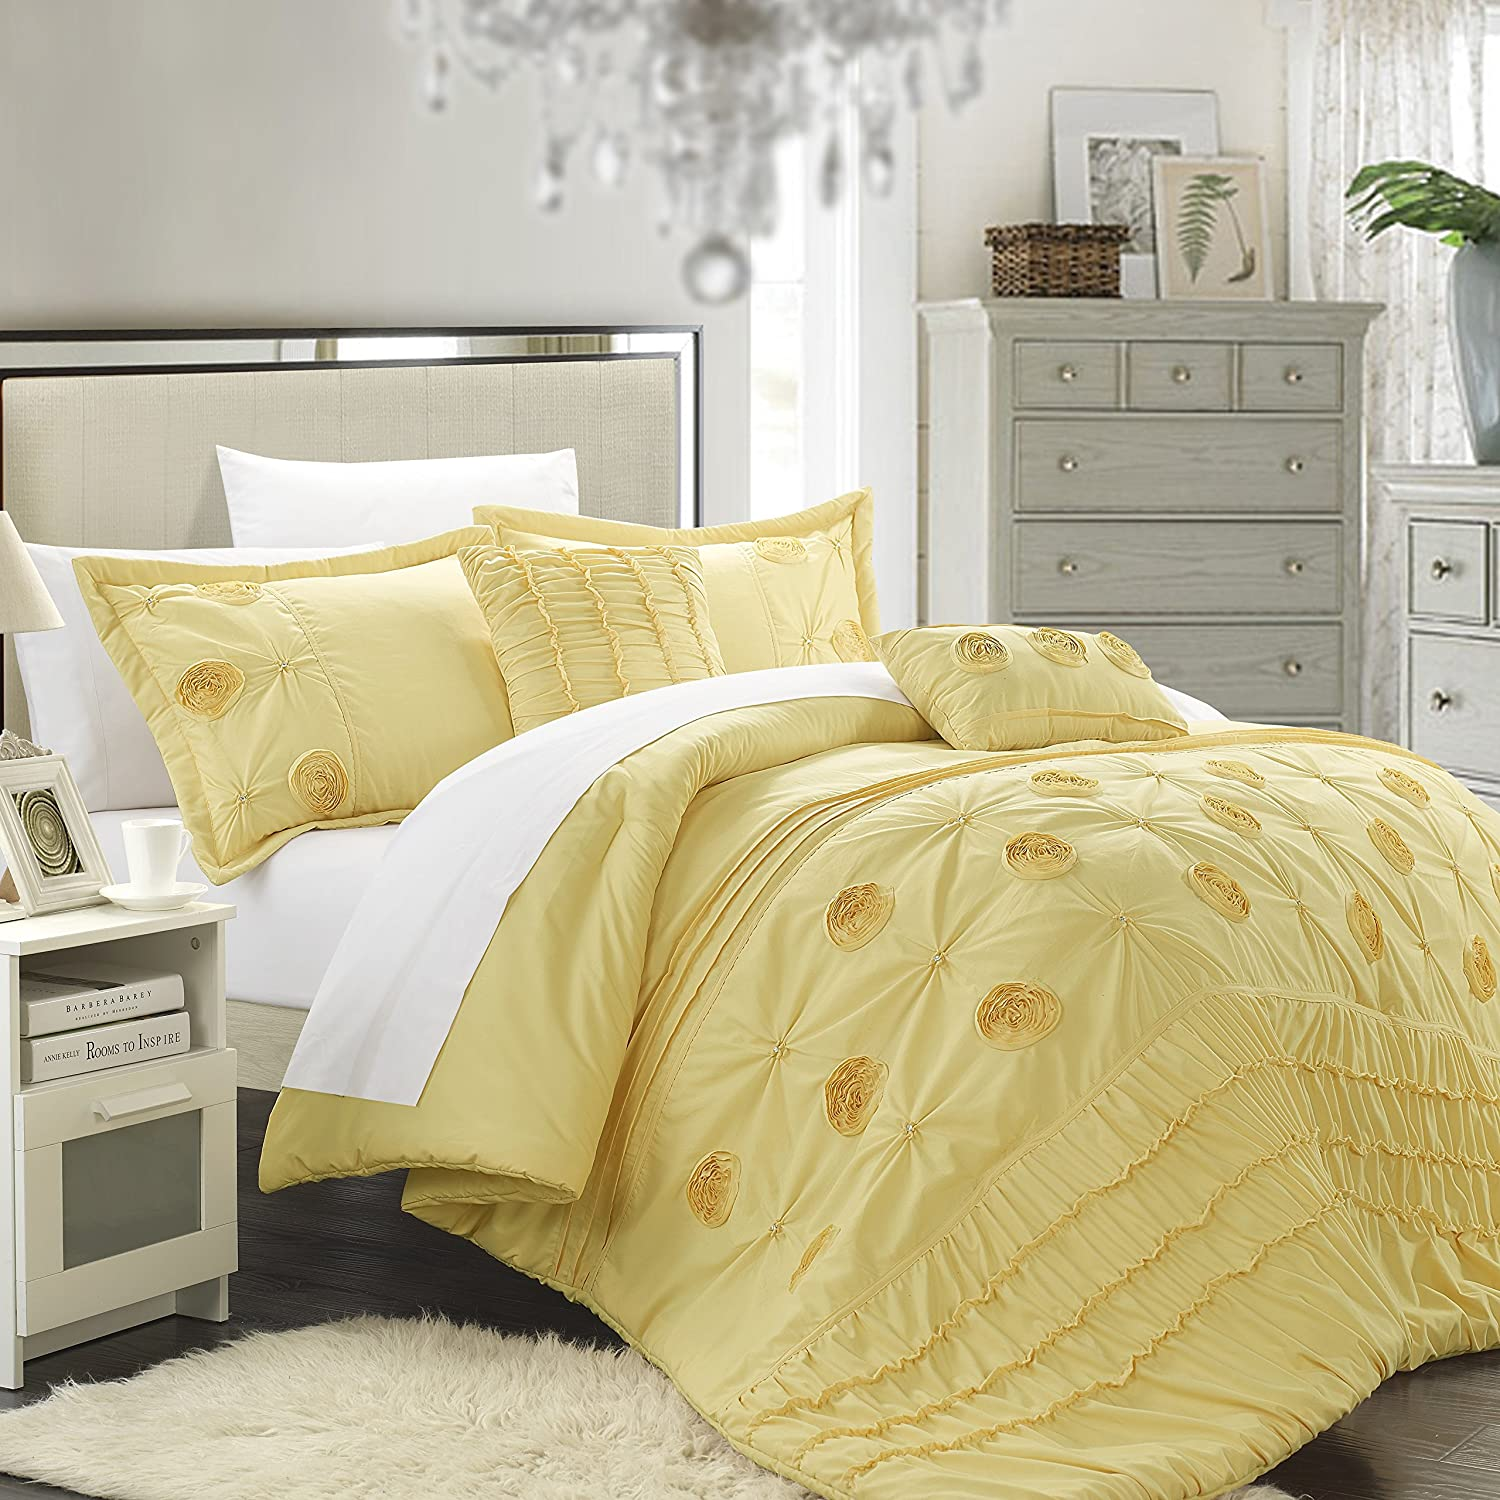 Yellow bedding ease bedding with style for Home designs comforter